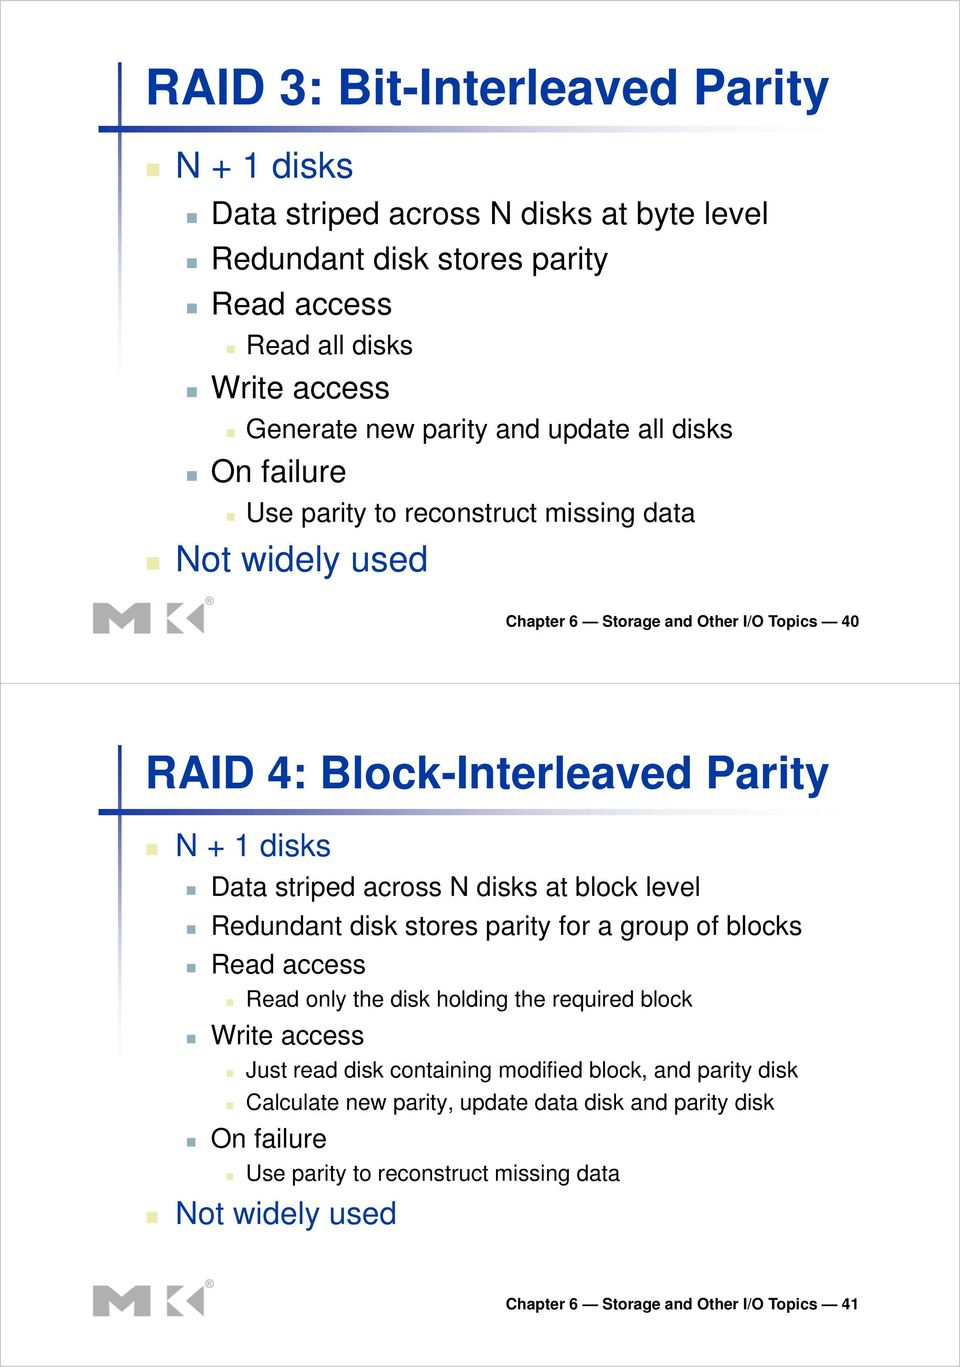 across N disks at block level Redundant disk stores parity for a group of blocks Read access Read only the disk holding the required block Write access Just read disk containing